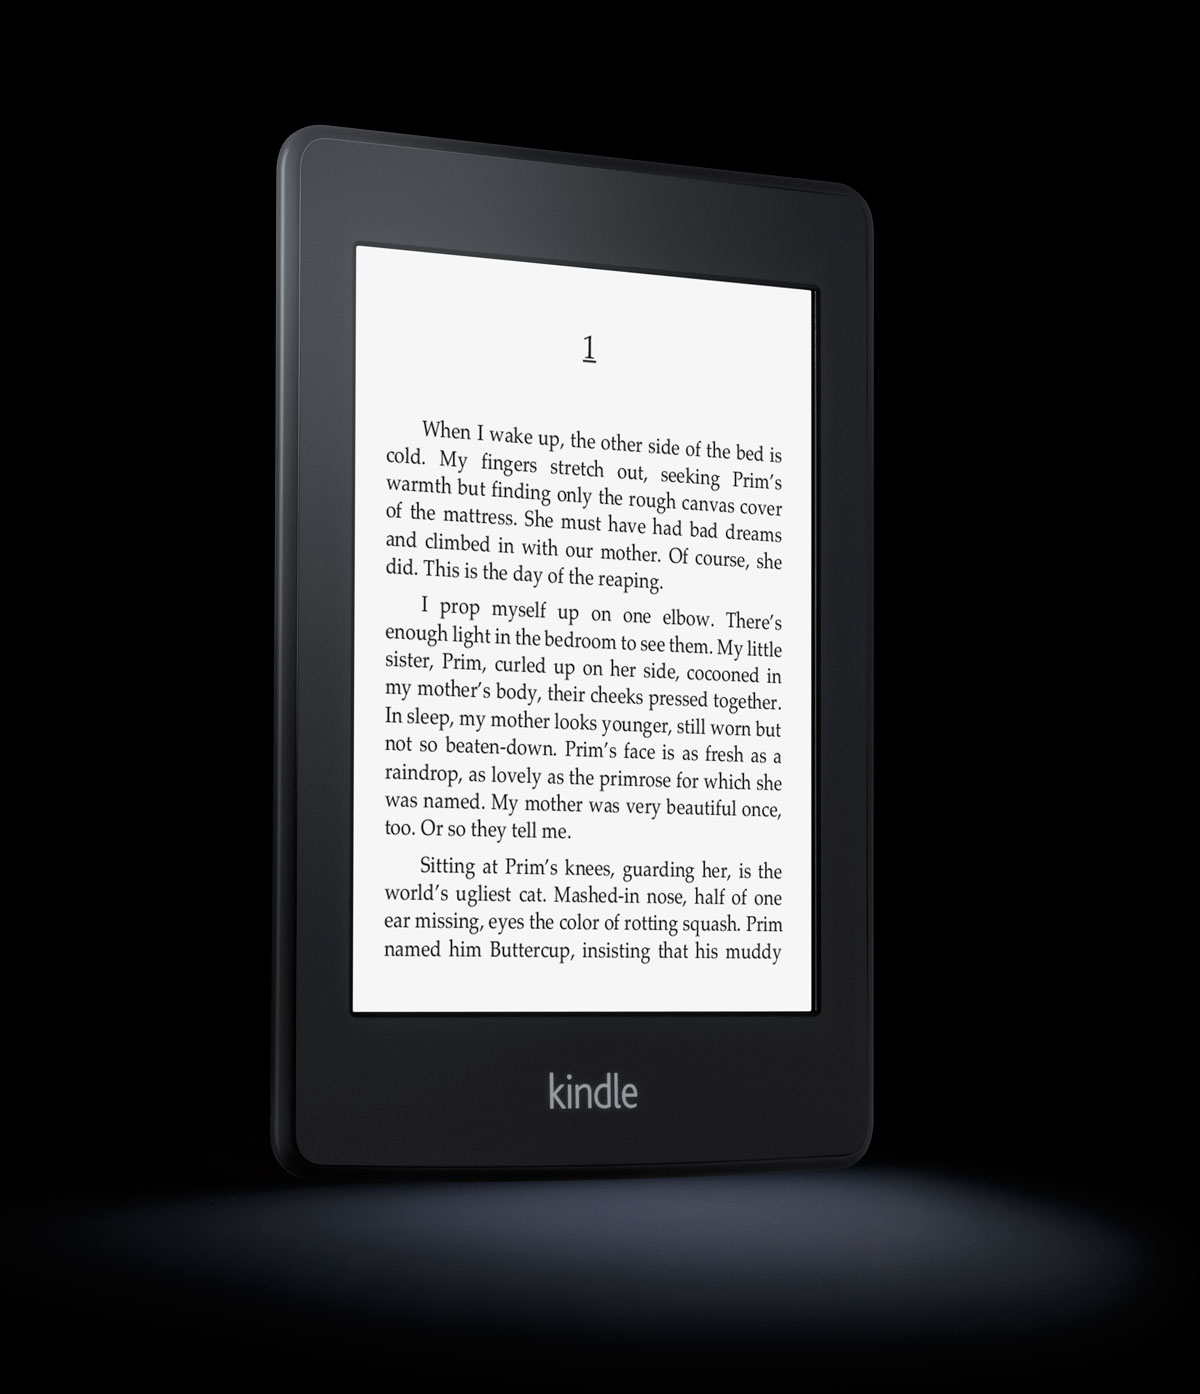 Amazon Kindle with Paperwhite Display